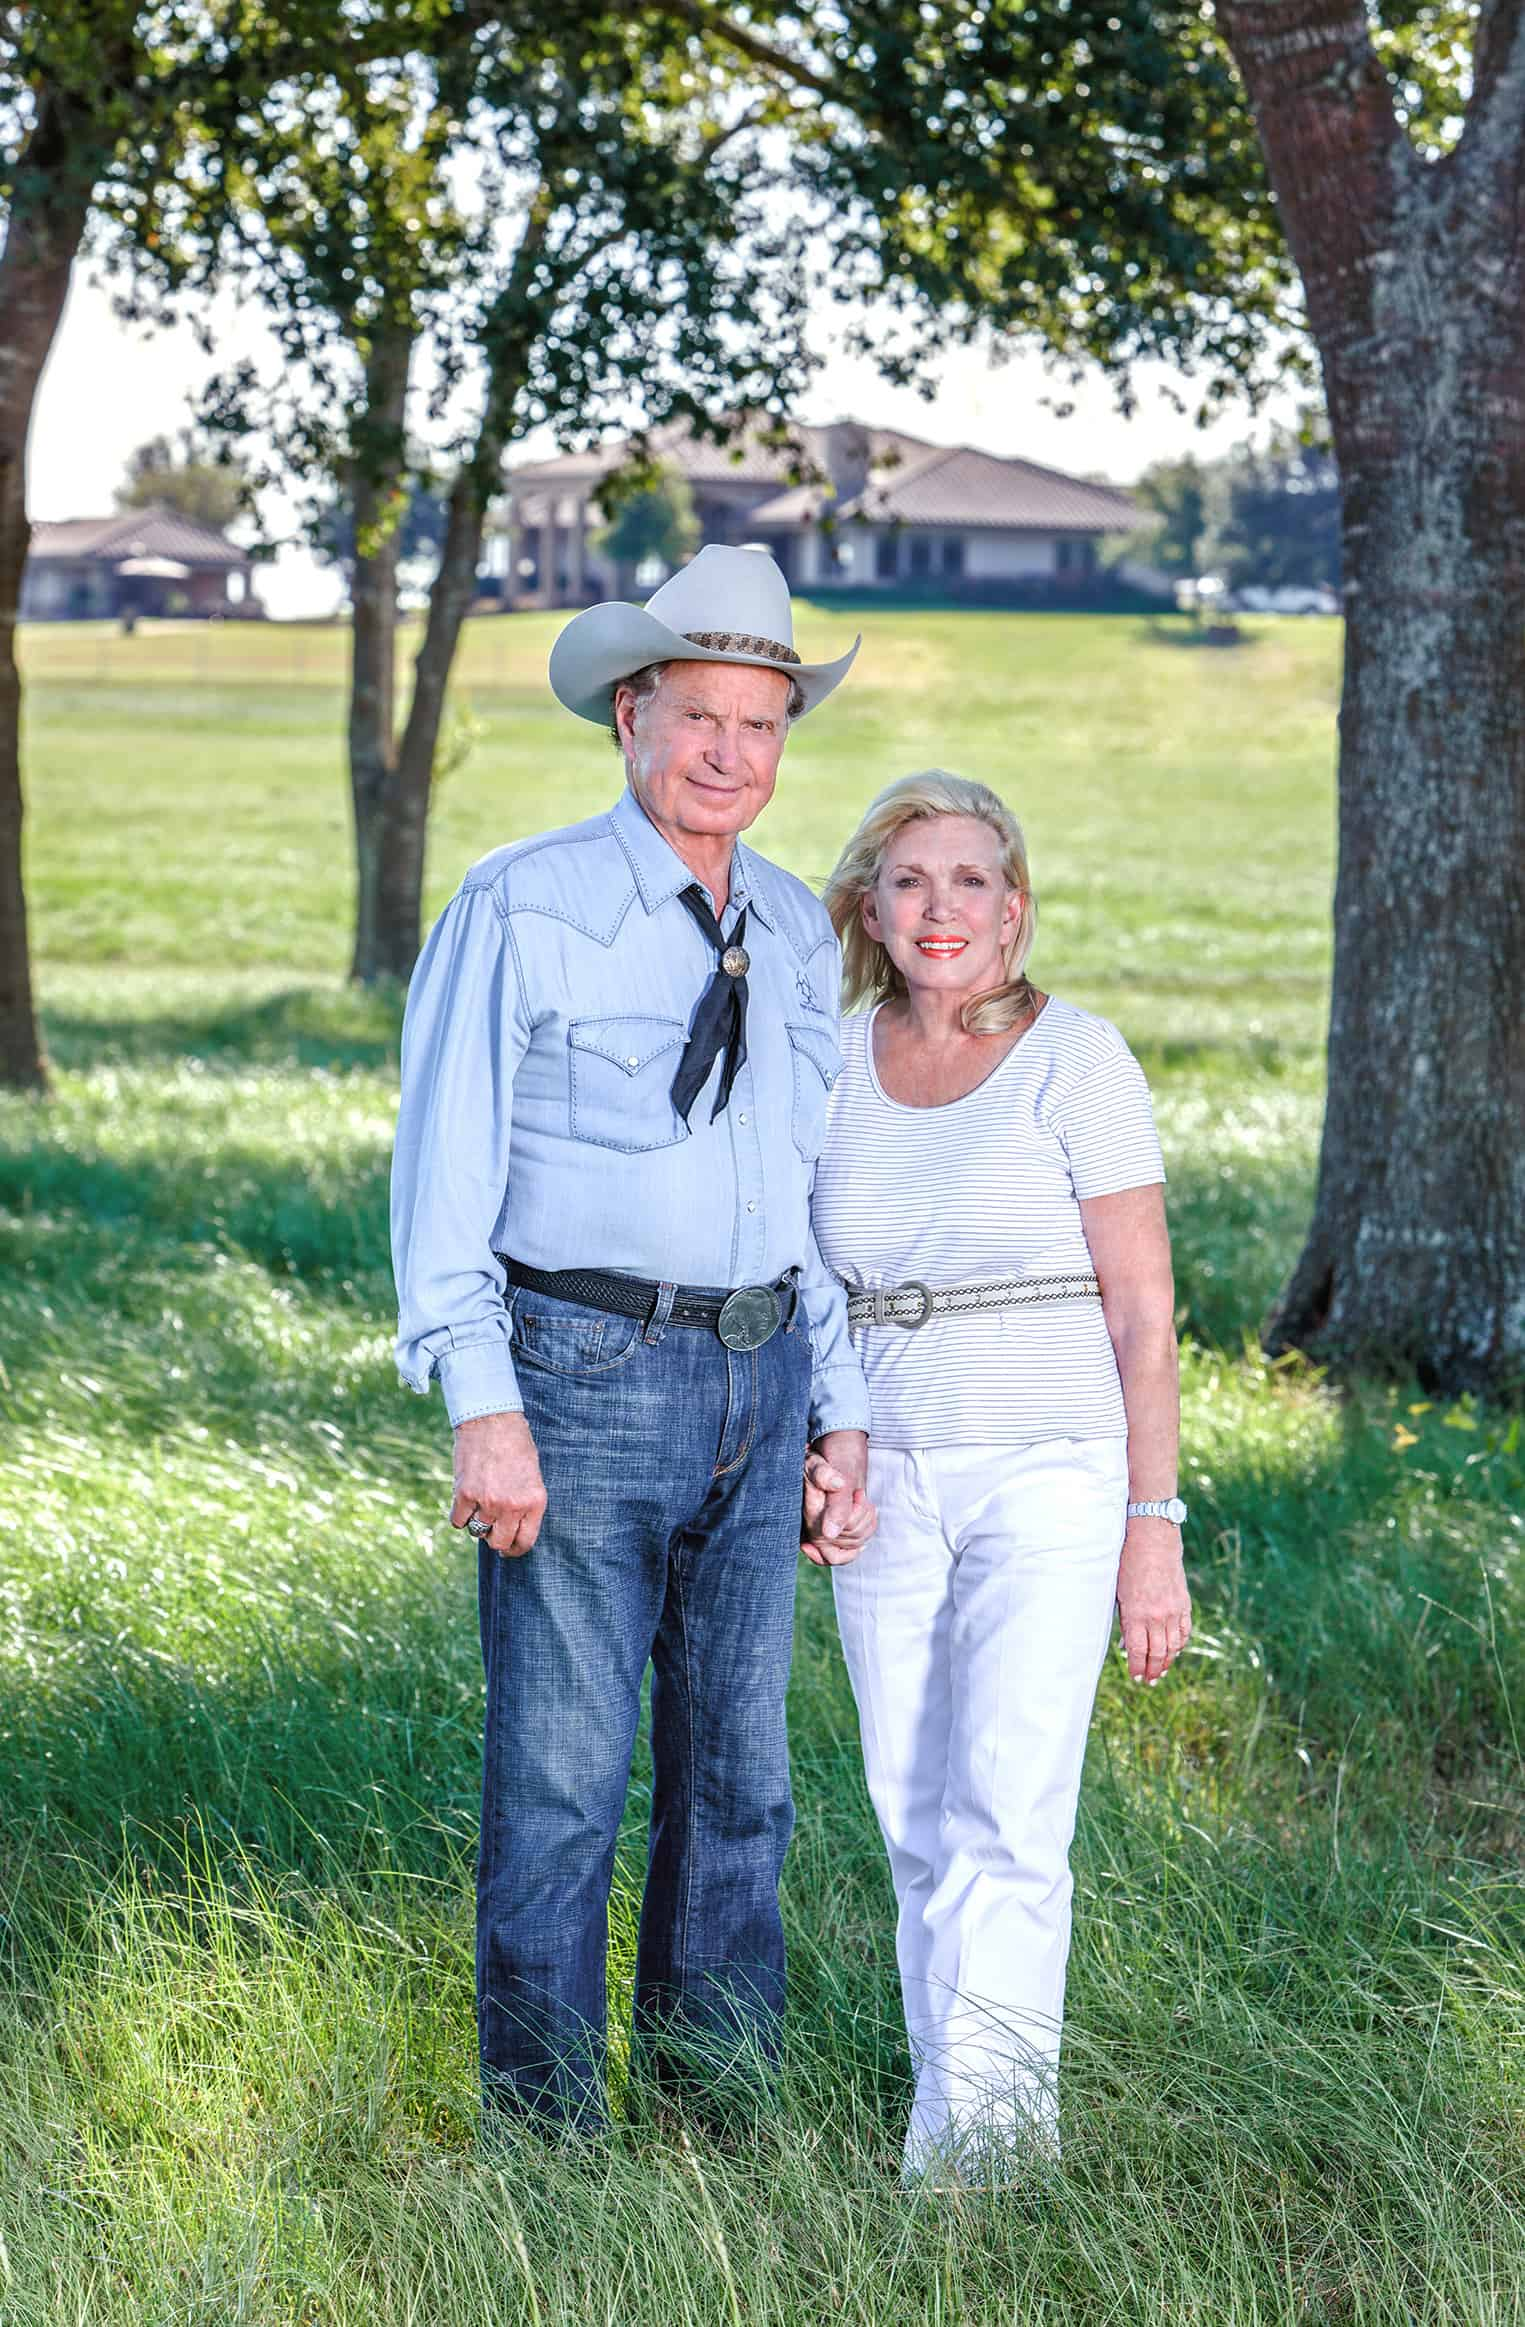 Welcome_Wilson_Sr_Joanne_Guest_Wilson_by_Houston_Photographer_Evin_Thayer